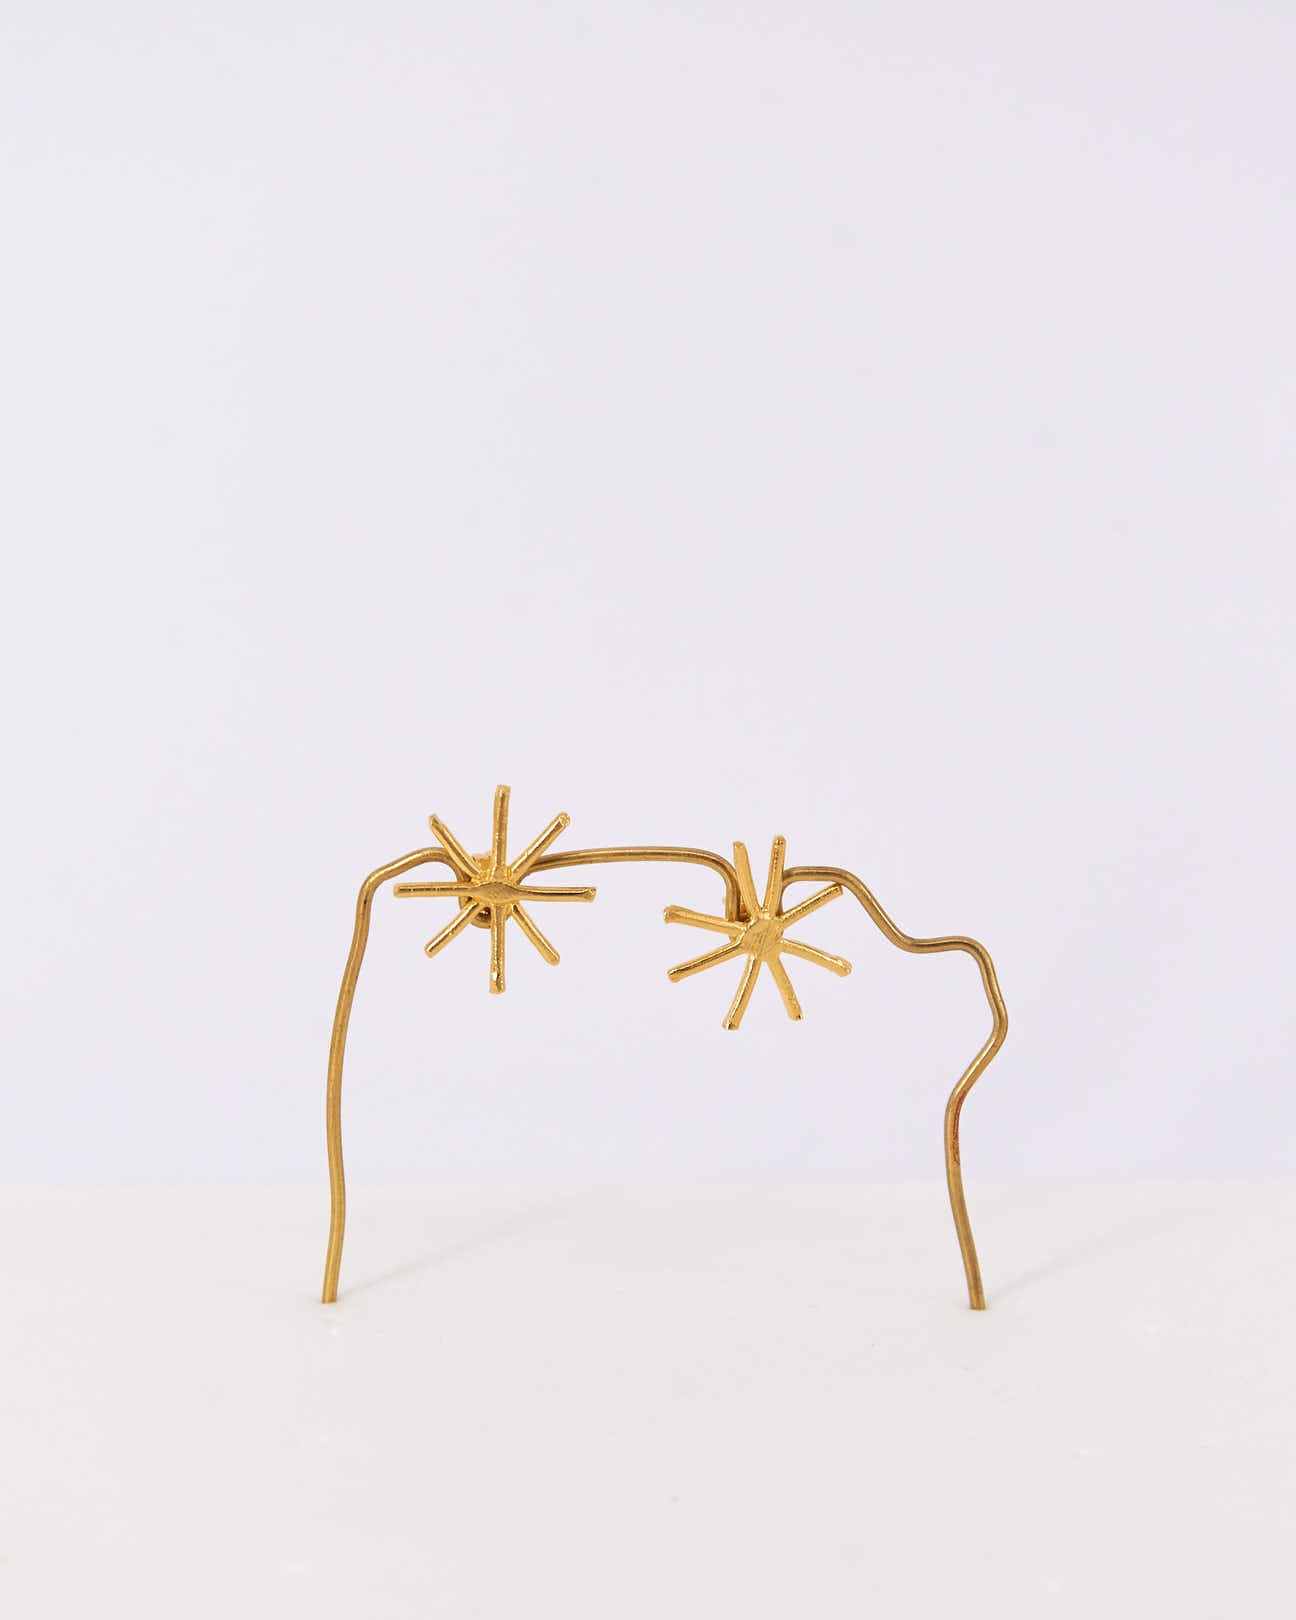 Earrings-Stud-Mini-Stars-CristinaJunquero-Gold-Handmade-Nuovum-Barcelona-localdesigners